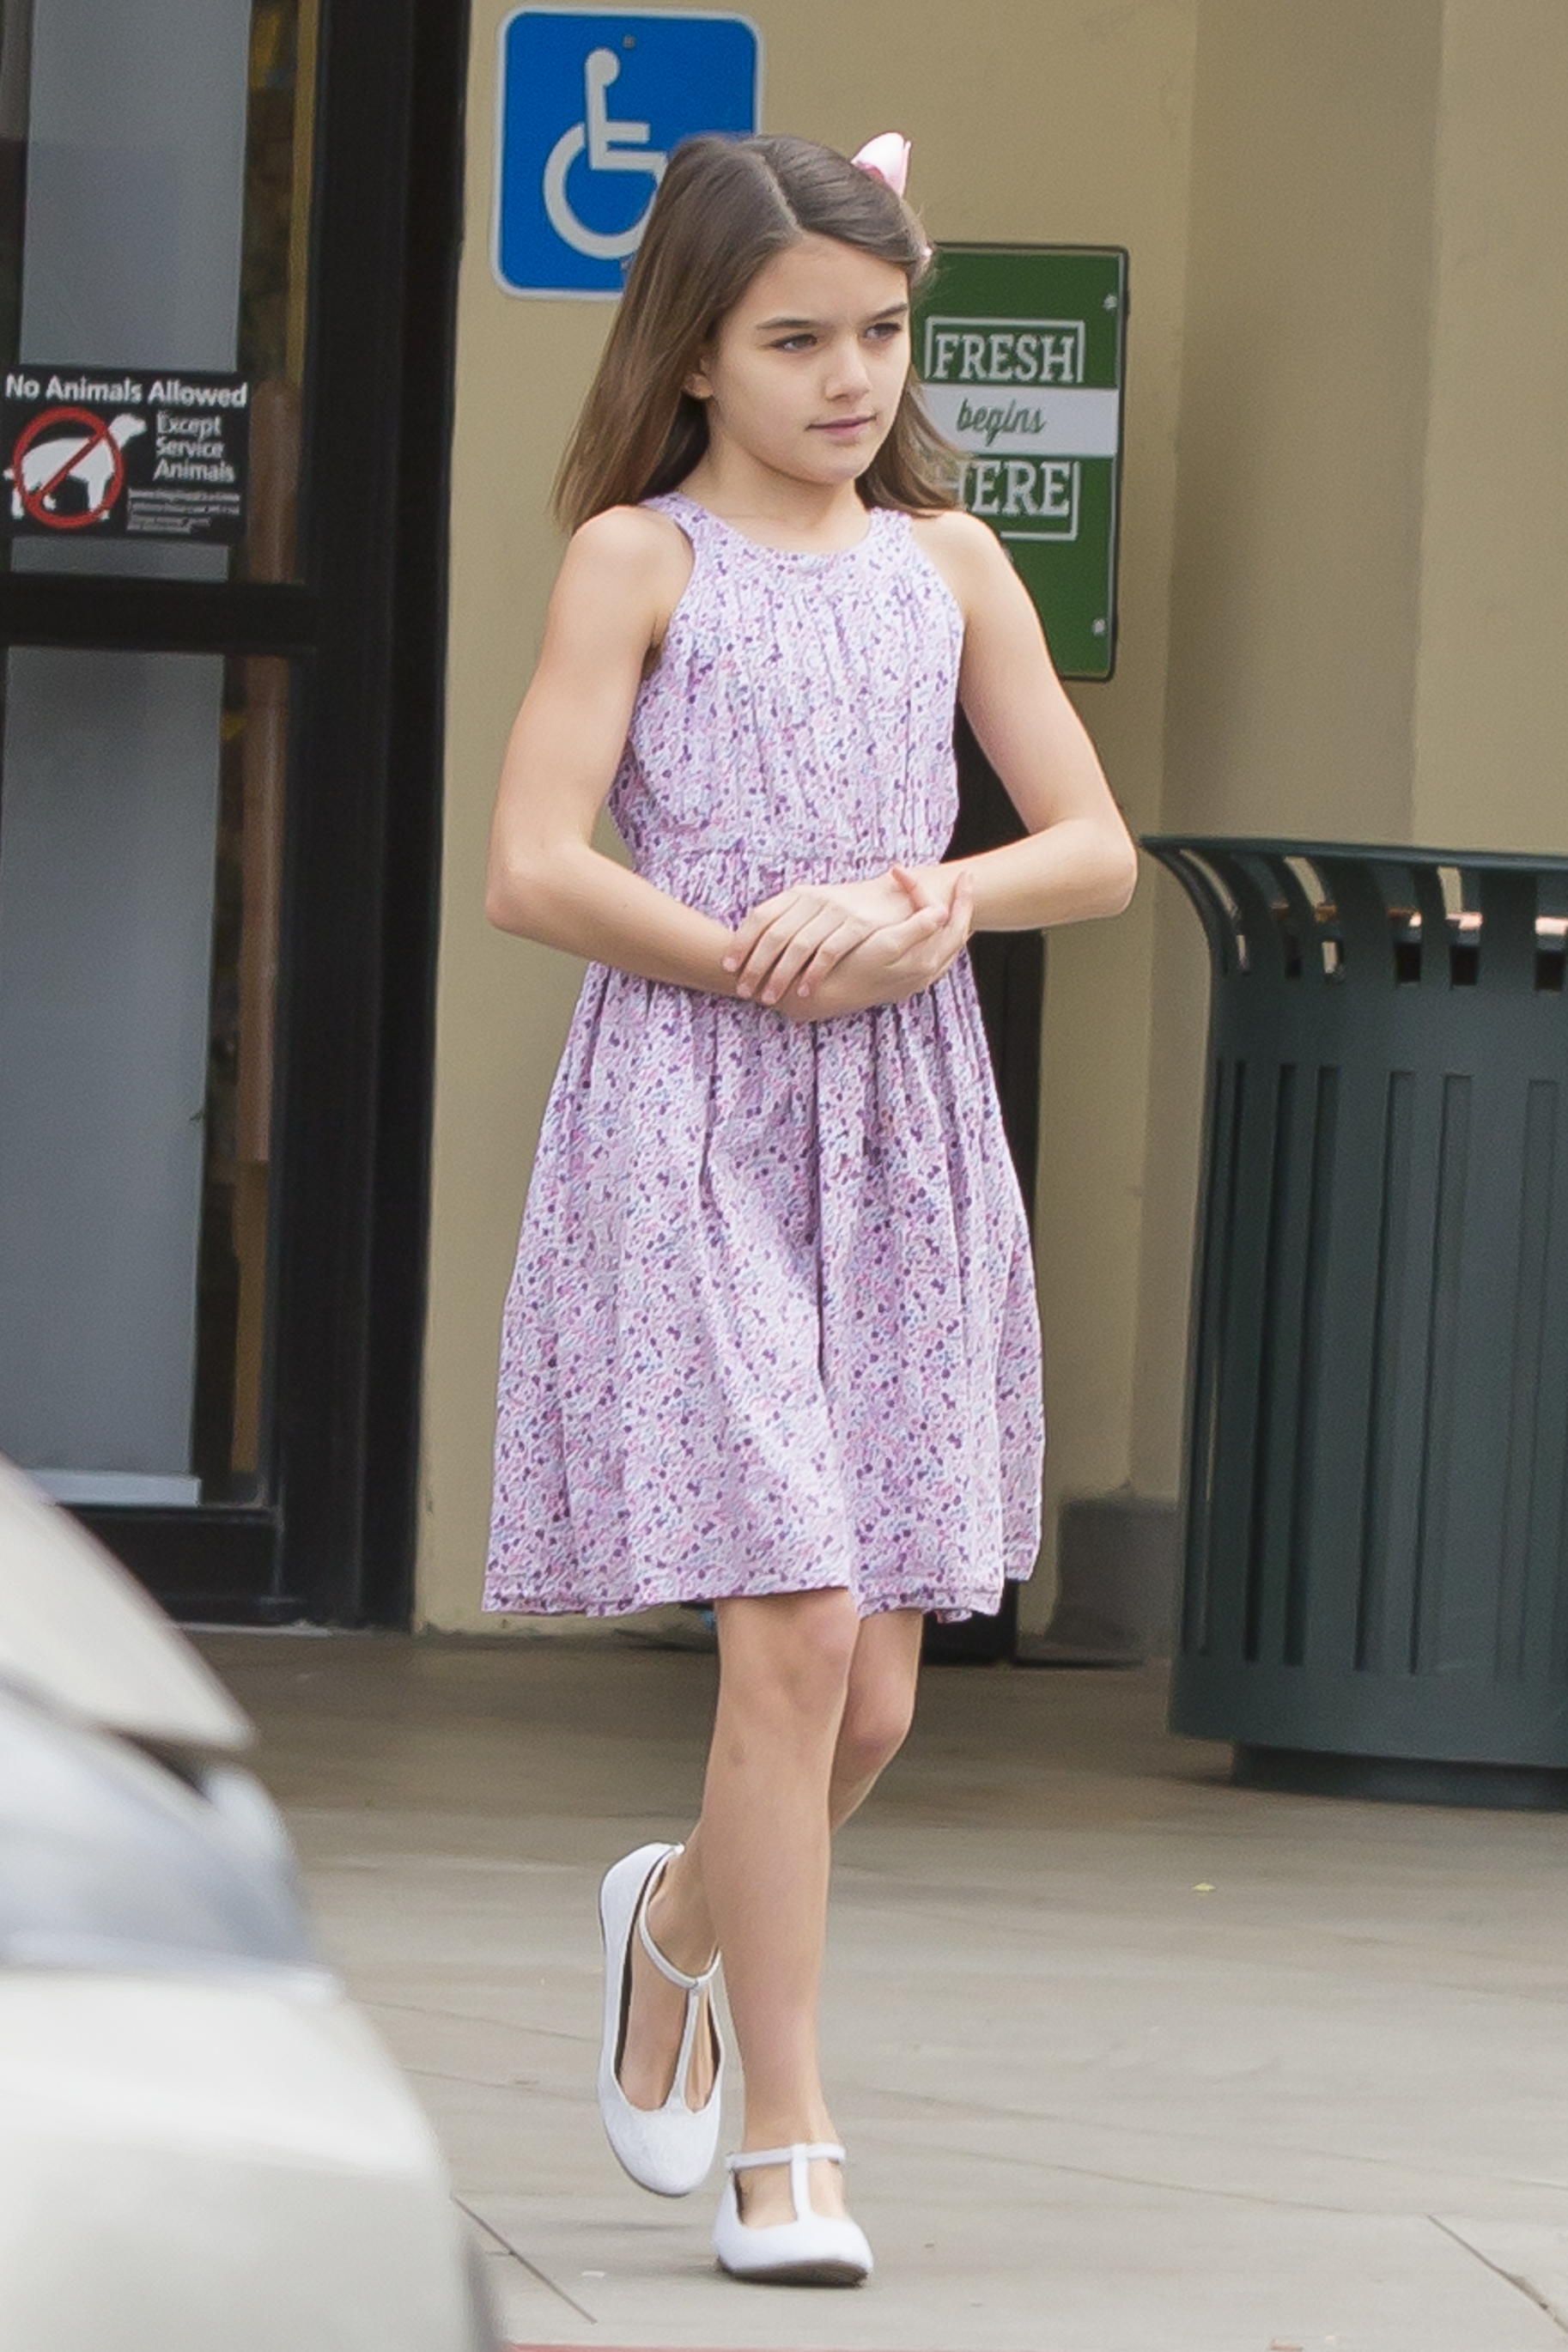 Katie Holmes And Daughter Suri Load Up On Groceries And Snacks In Floral Ensembles